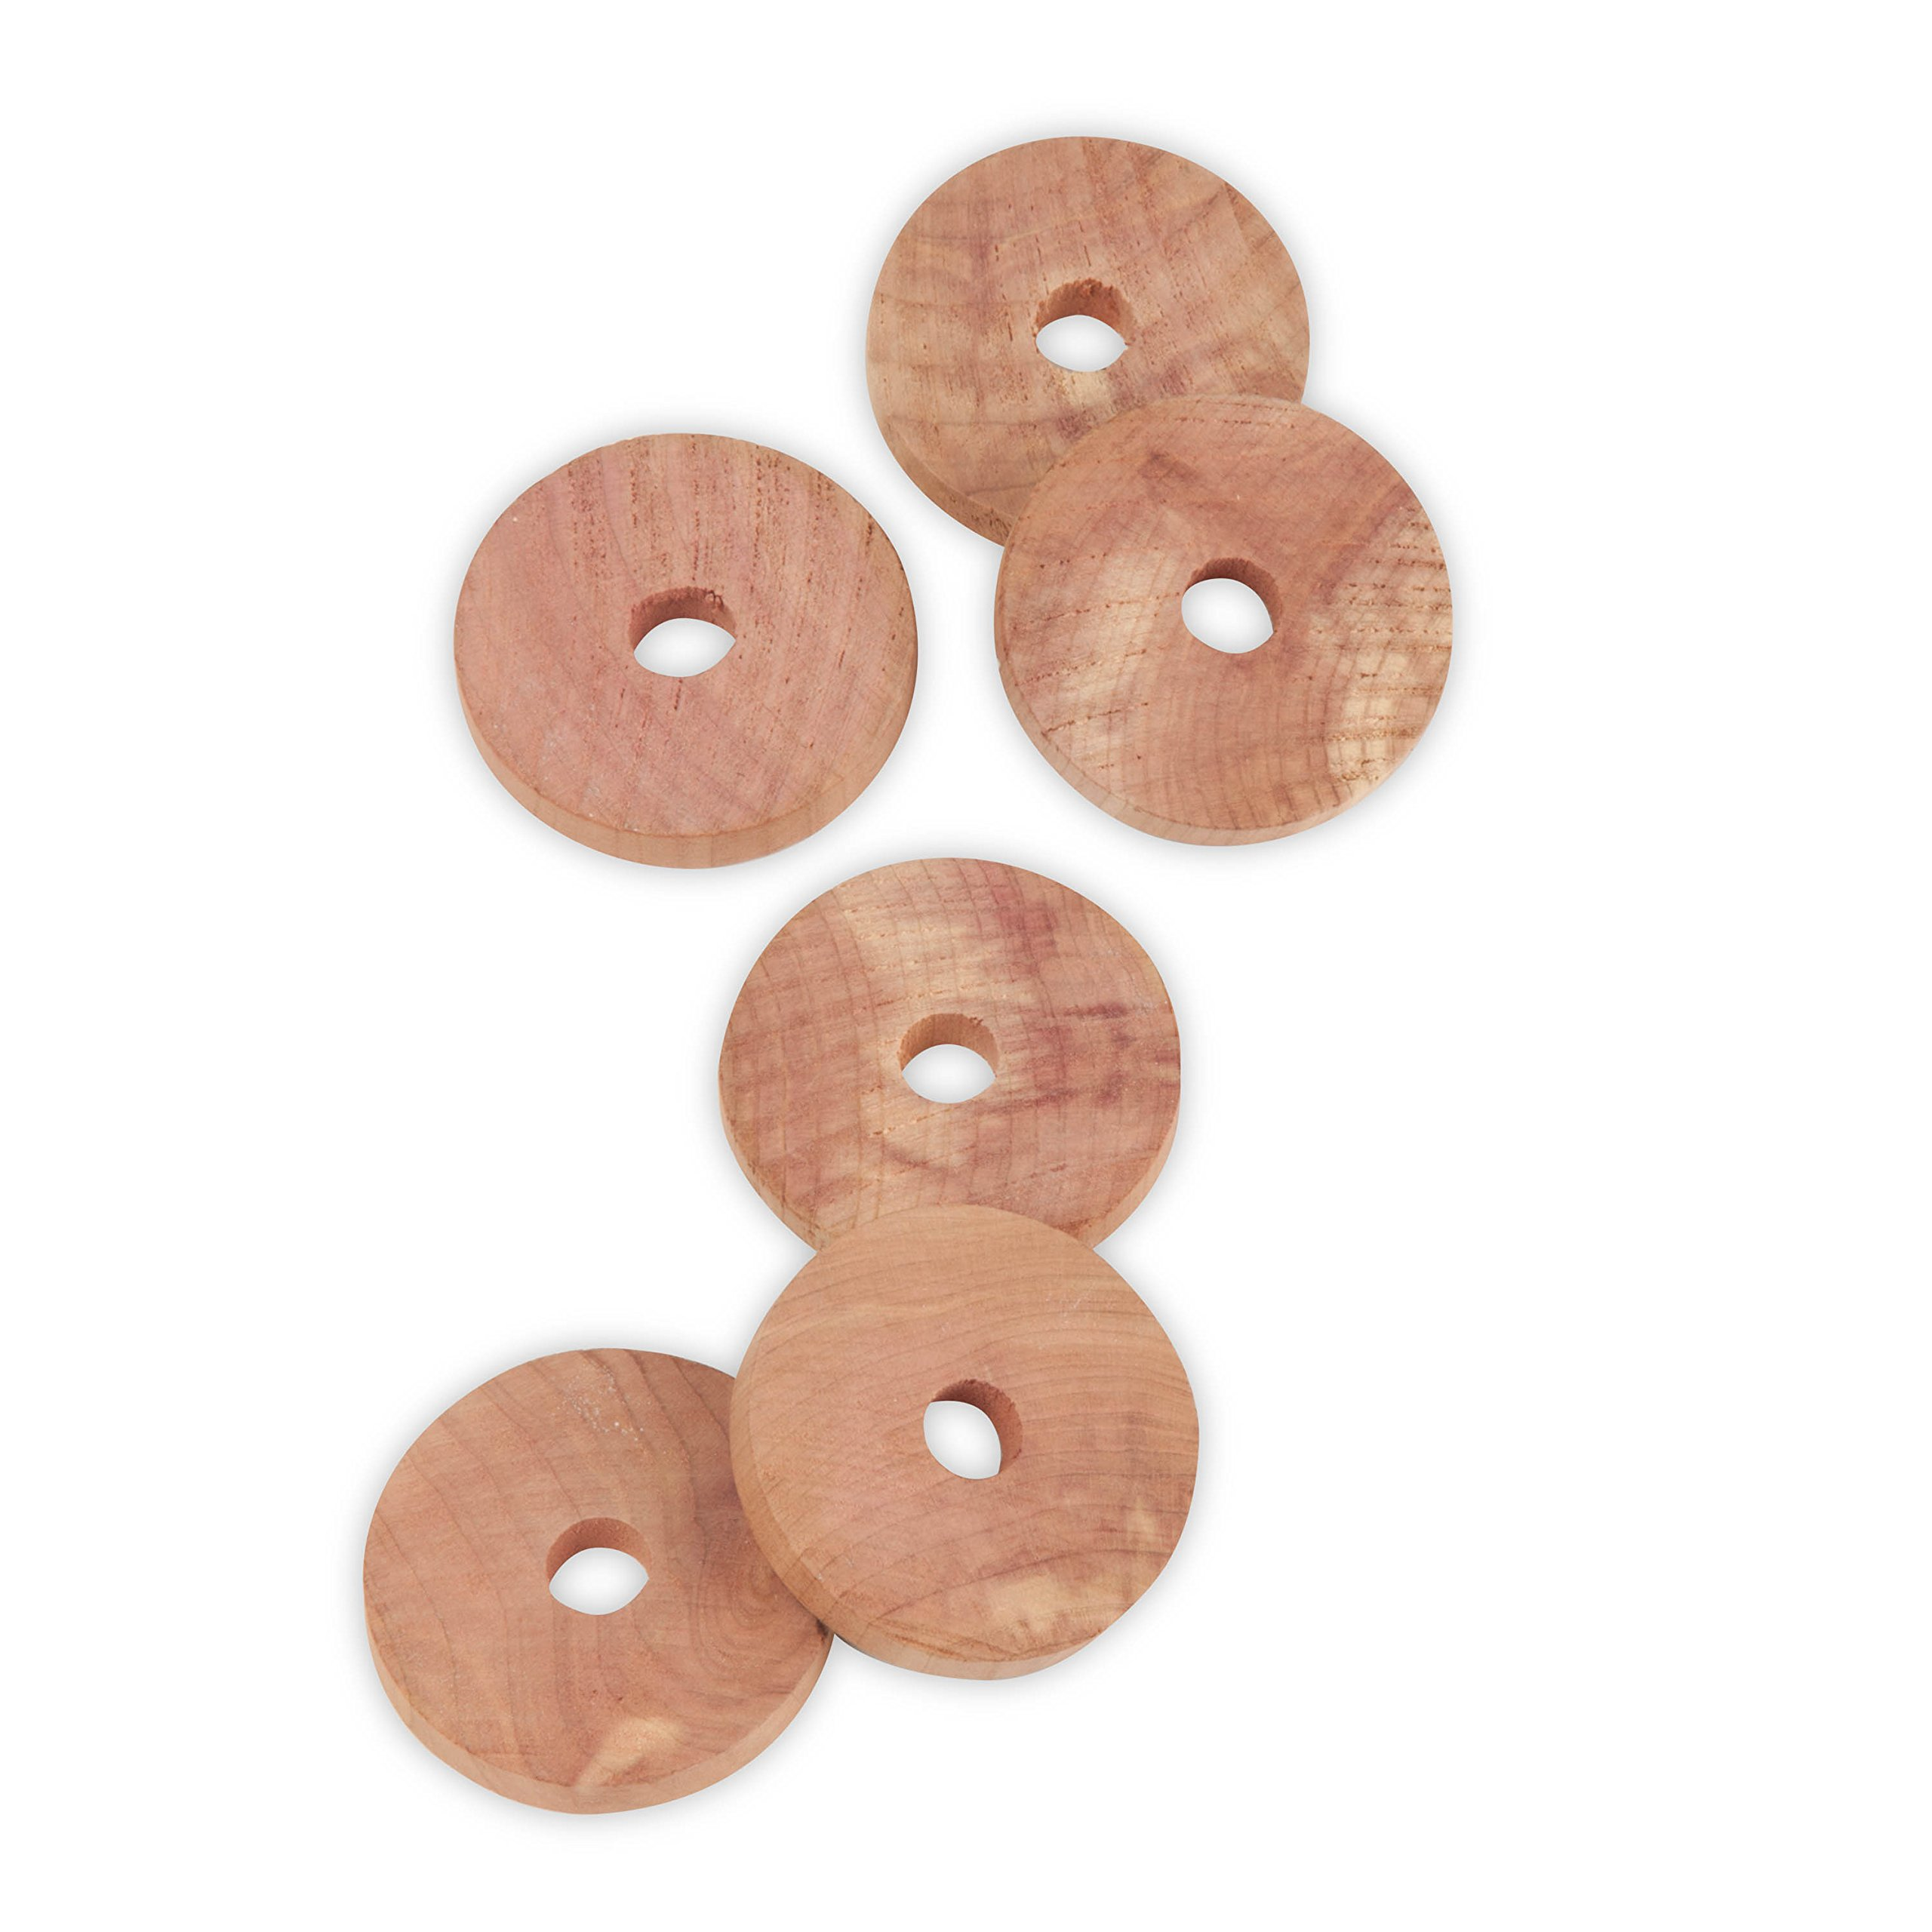 Honey-Can-Do 6-Pack Cedar Hanger Rings for Garments and Closets, Natural Red